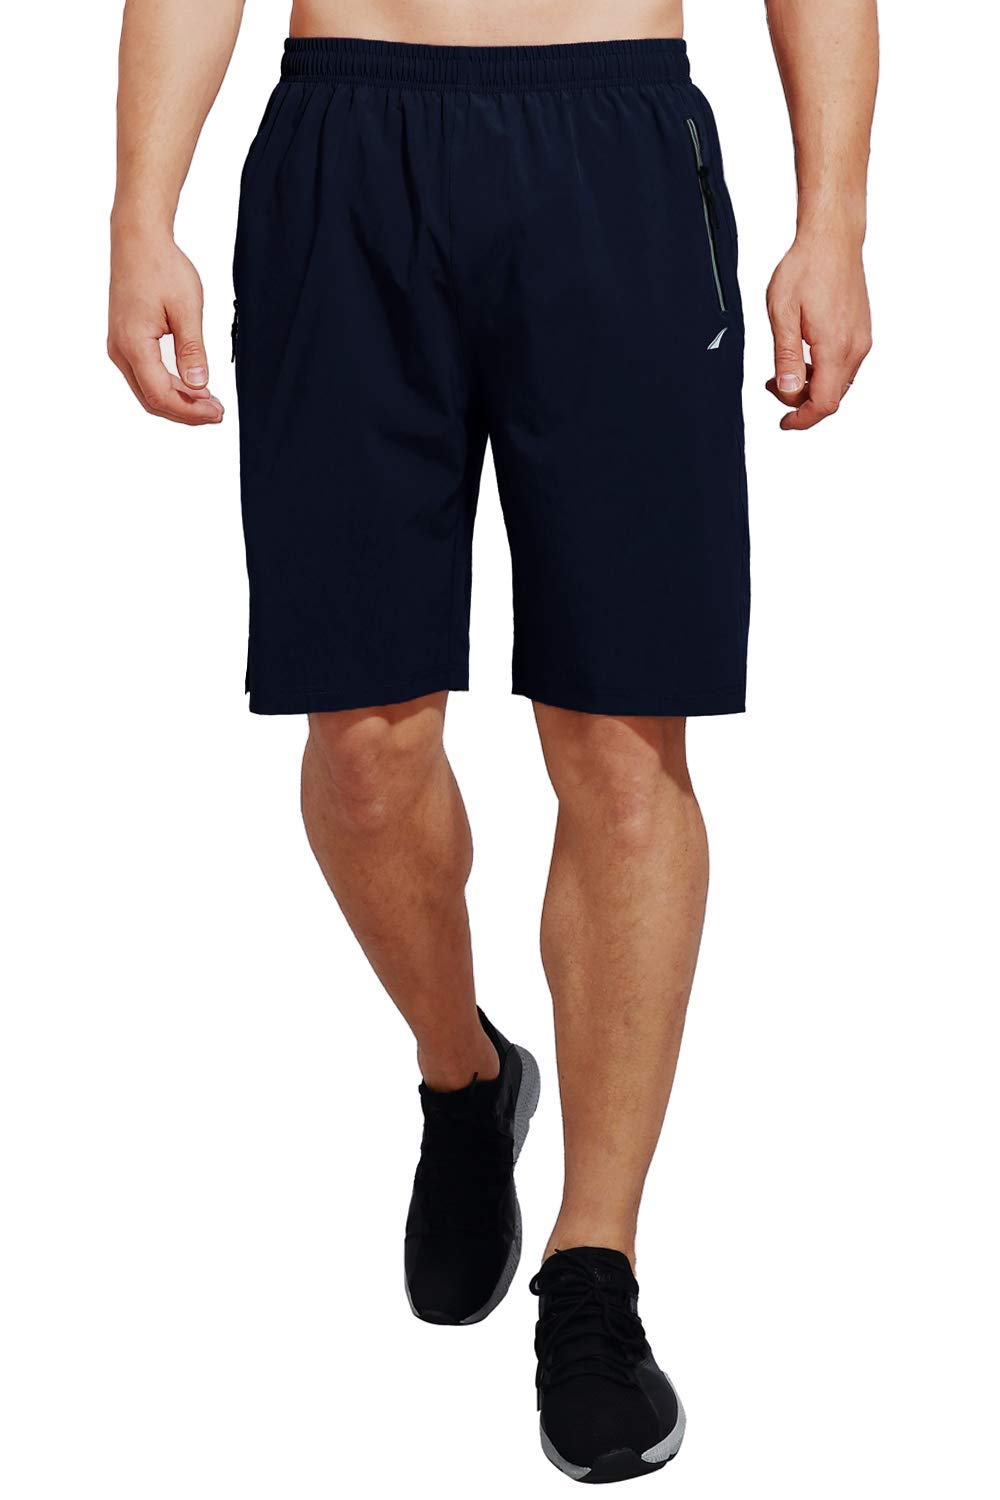 VAYAGER Mens Athletic Shorts 9 Inch Running Workout Short Quick Dry Mesh Liner with Zipper Pockets